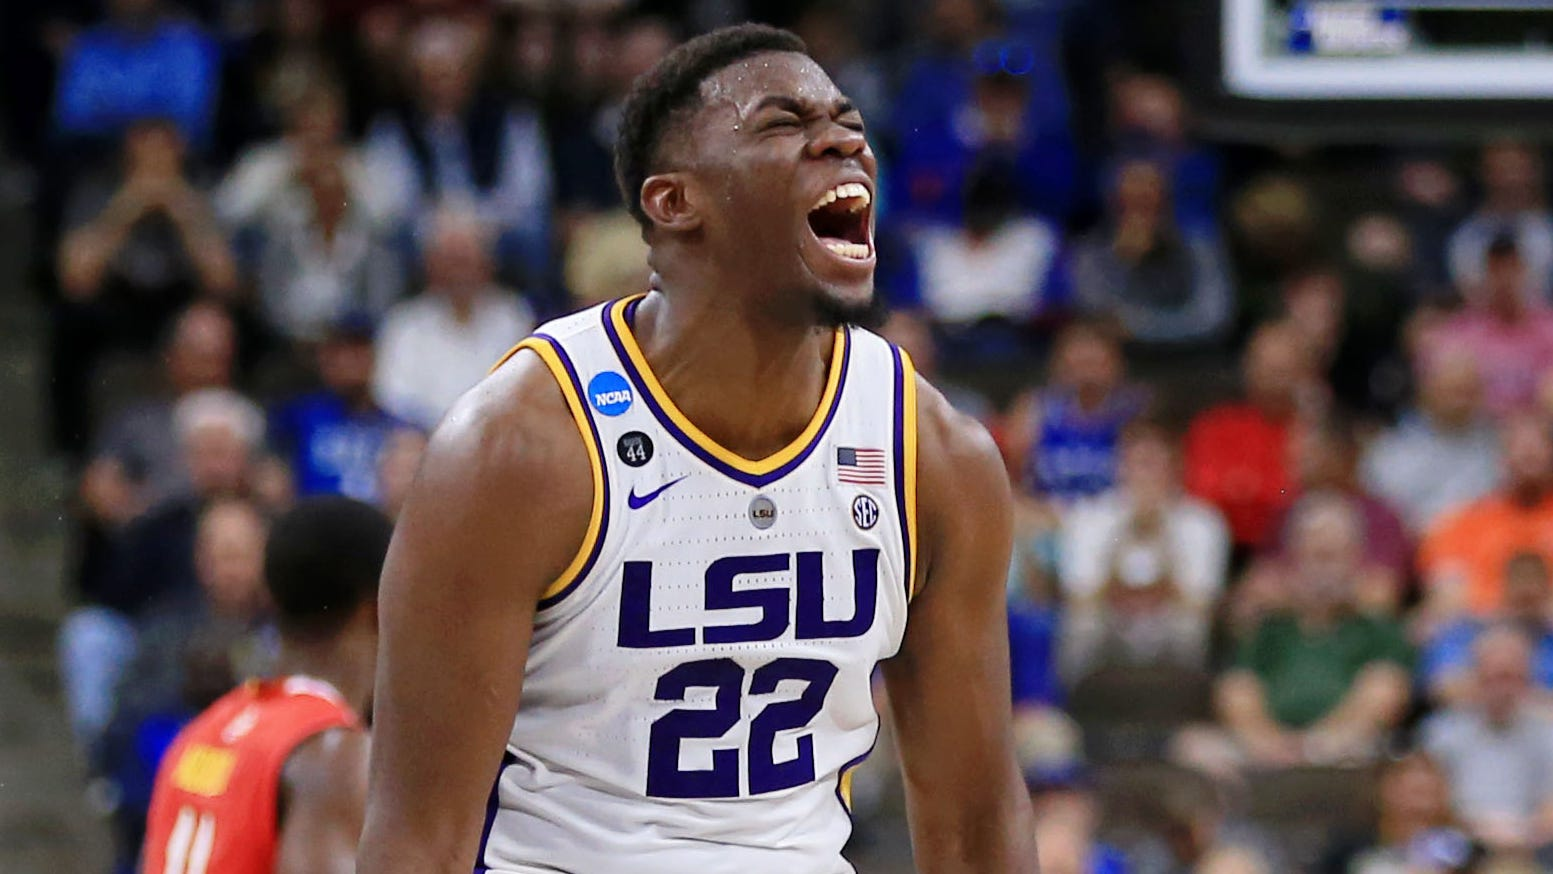 LSU forward Darius Days and the rest of the Tigers are headed to the NCAA Sweet 16 after beating Maryland on Saturday.